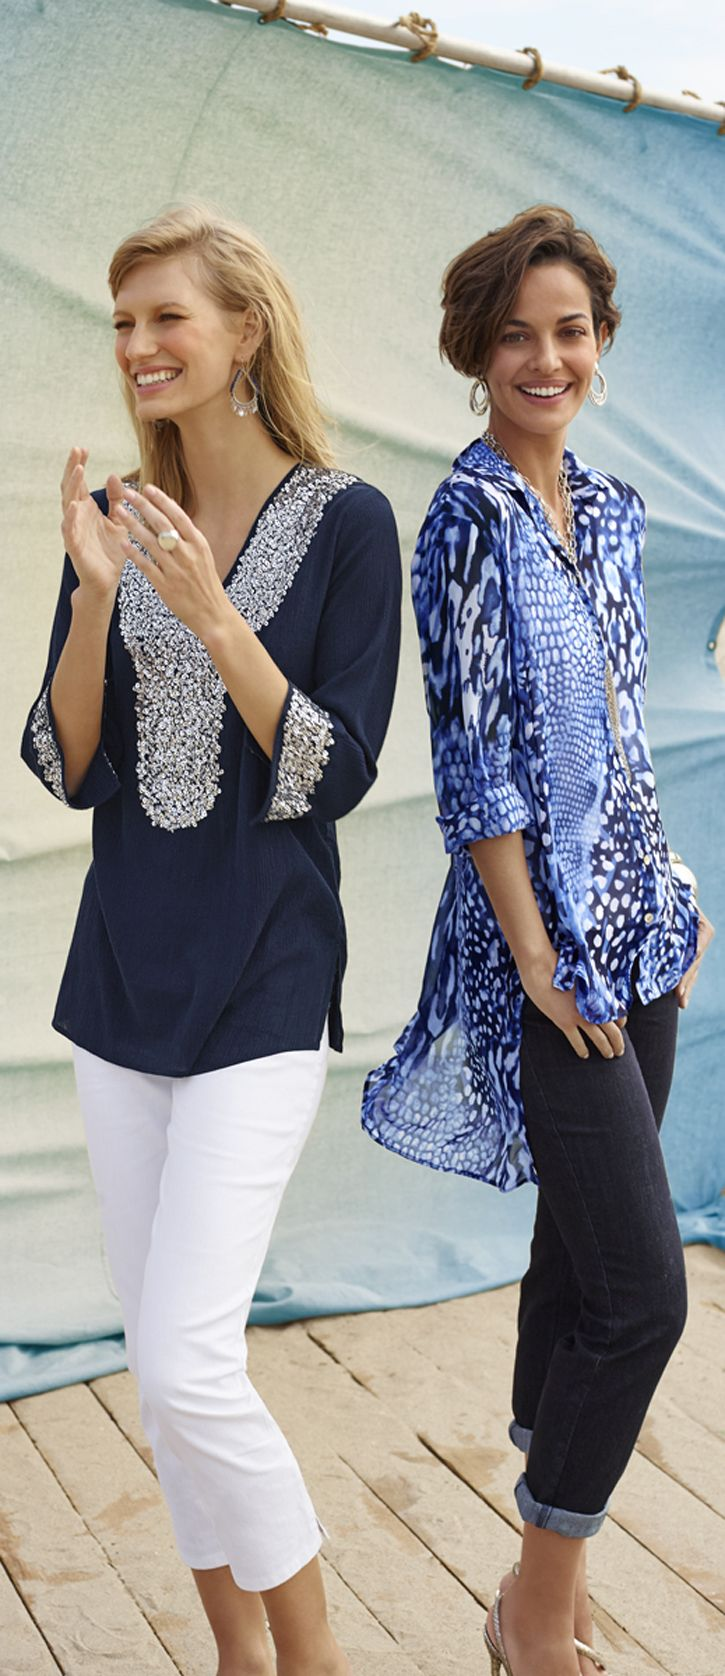 Chicos long over lean. Pair long tops with lean pants to look instantly slimmer (and entirely fabulous). Summer 2014